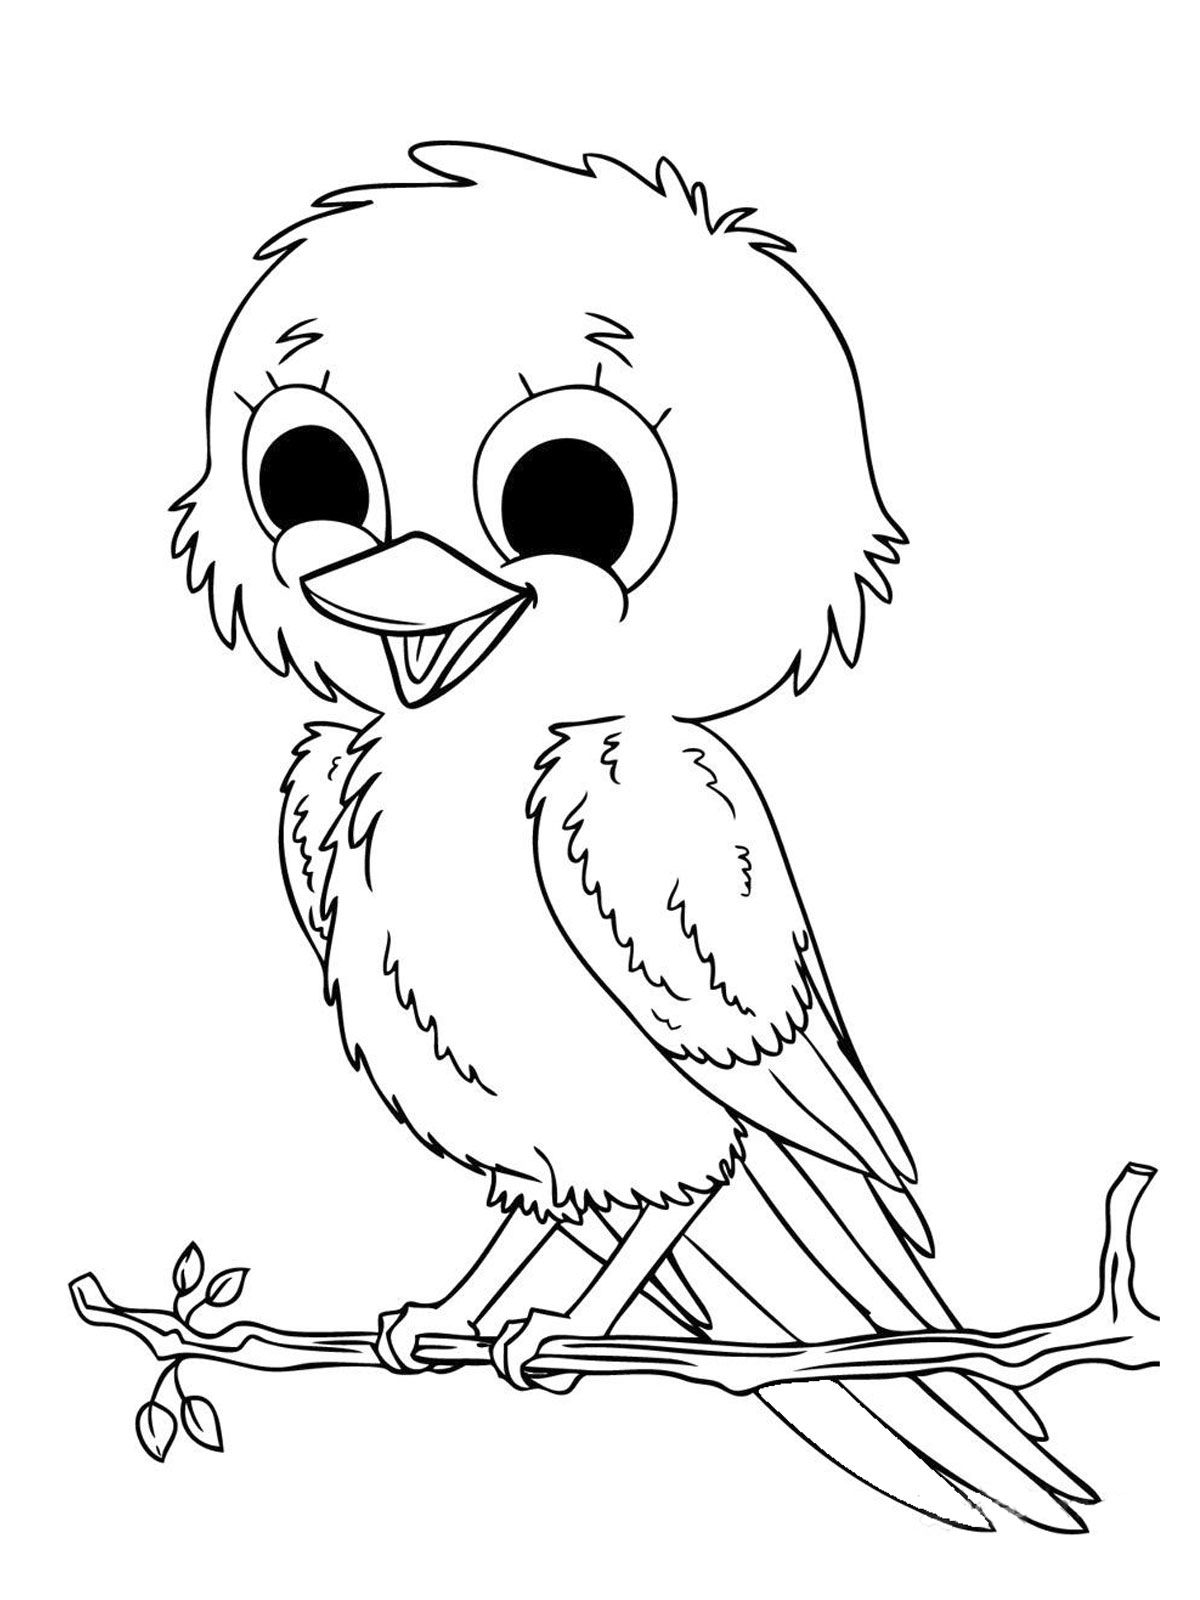 birds are one of the most lovable animals in the world especially by children here we bring you amazing collection of 20 free printable bird coloring pages